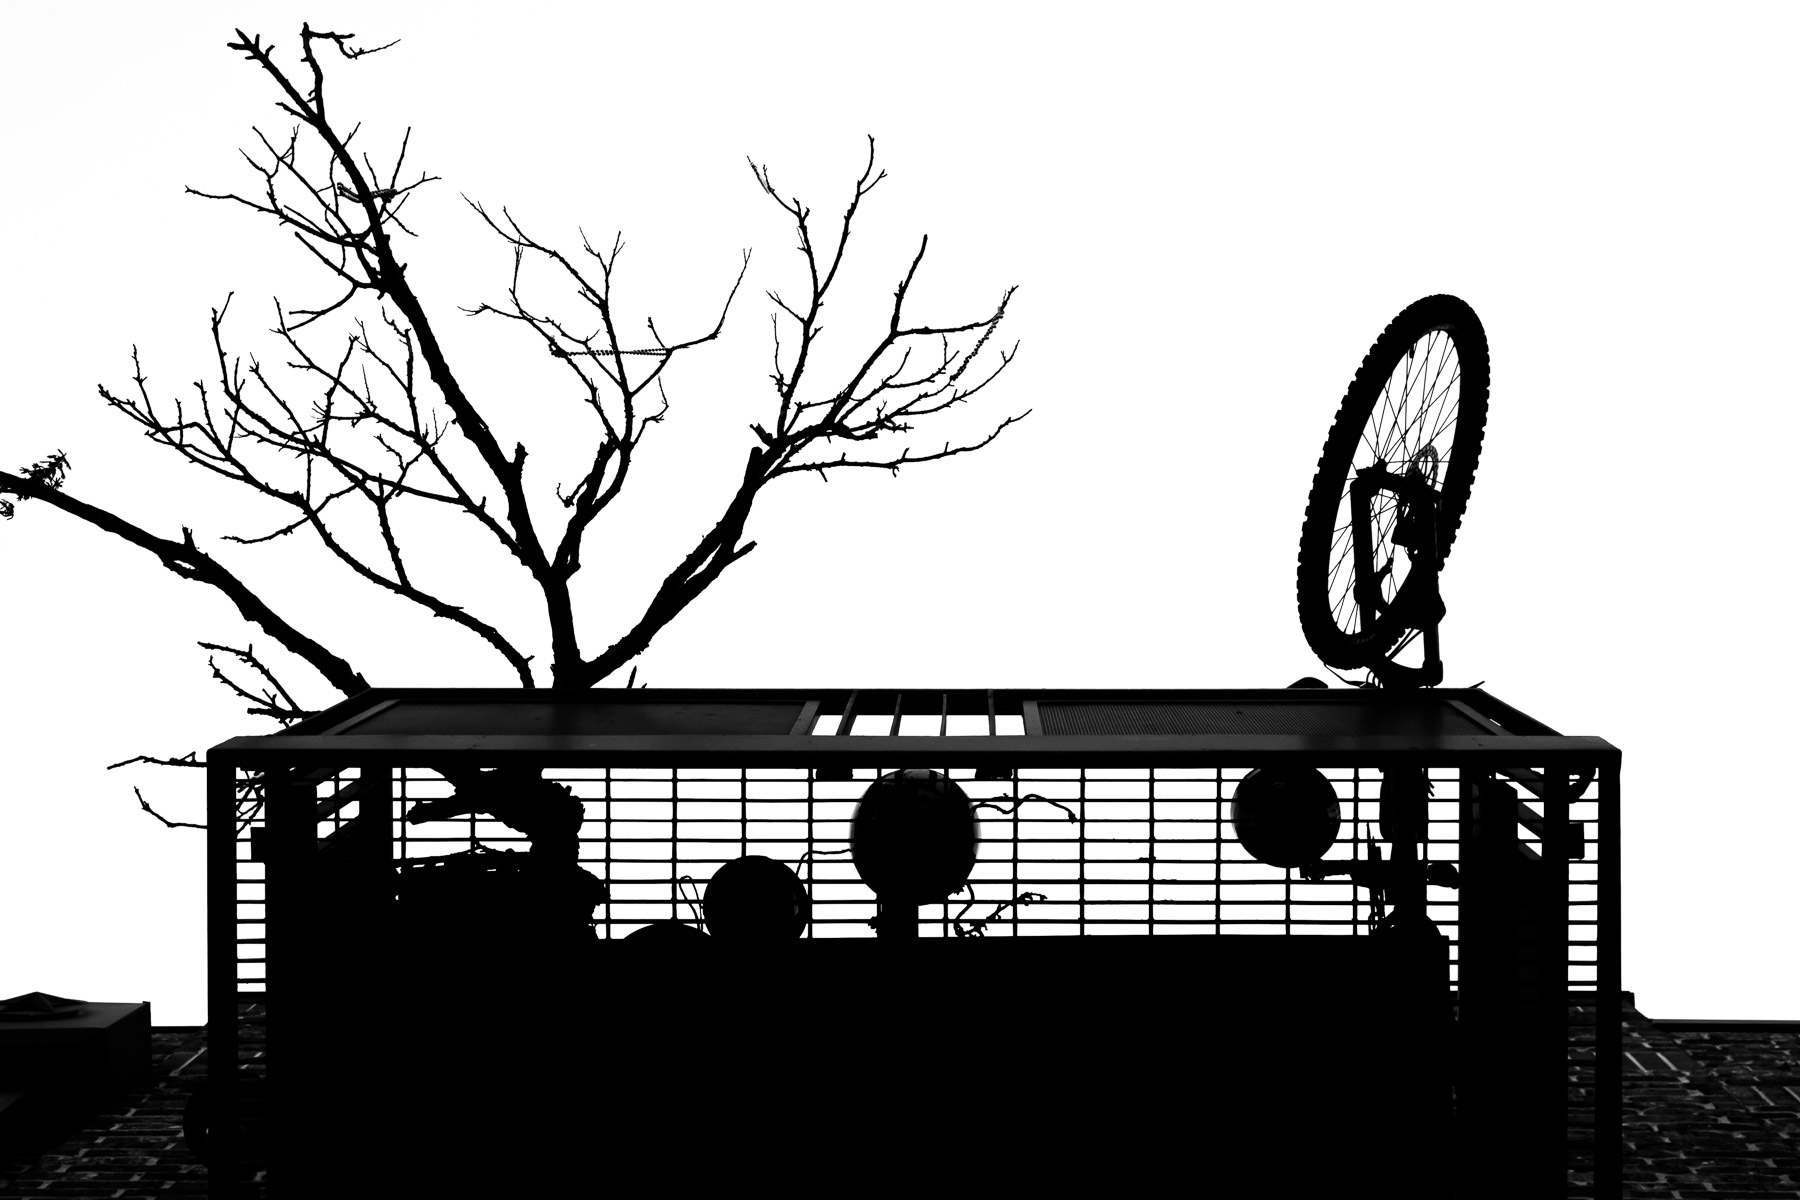 The silhouettes of a bicycle and a small tree on a balcony at a Downtown Plano, Texas, apartment building.